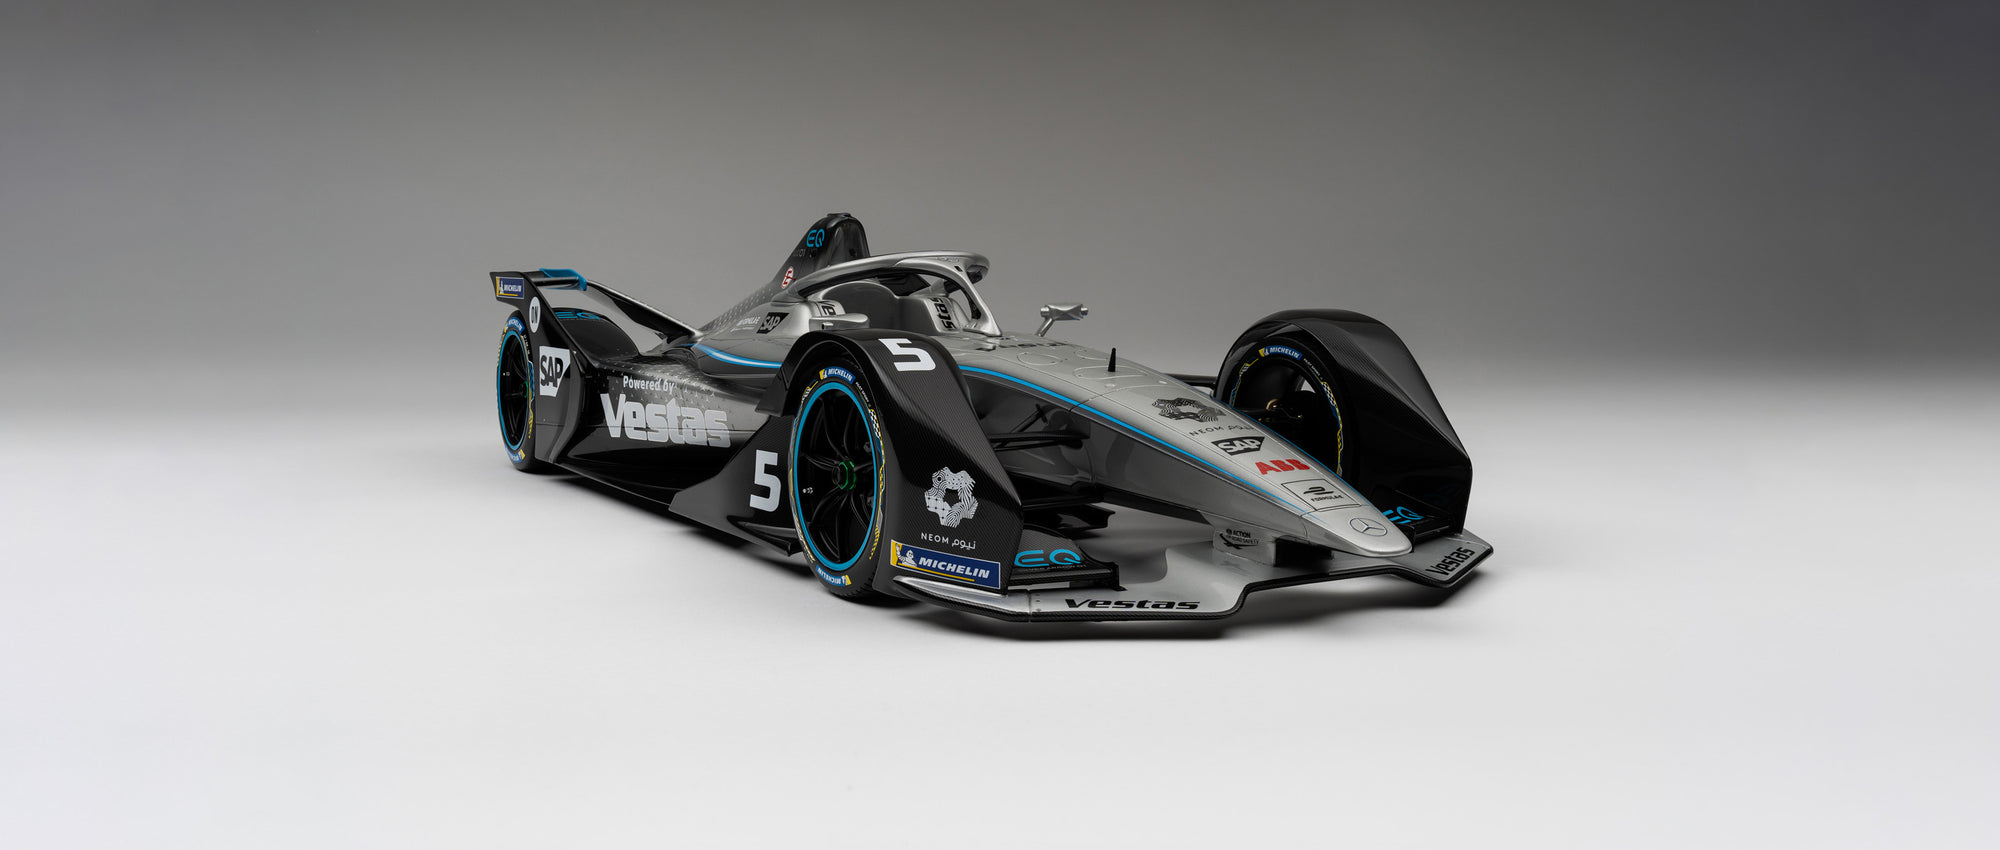 Mercedes-Benz EQ Silver Arrow 01 (2019) - Gen2 Season 6